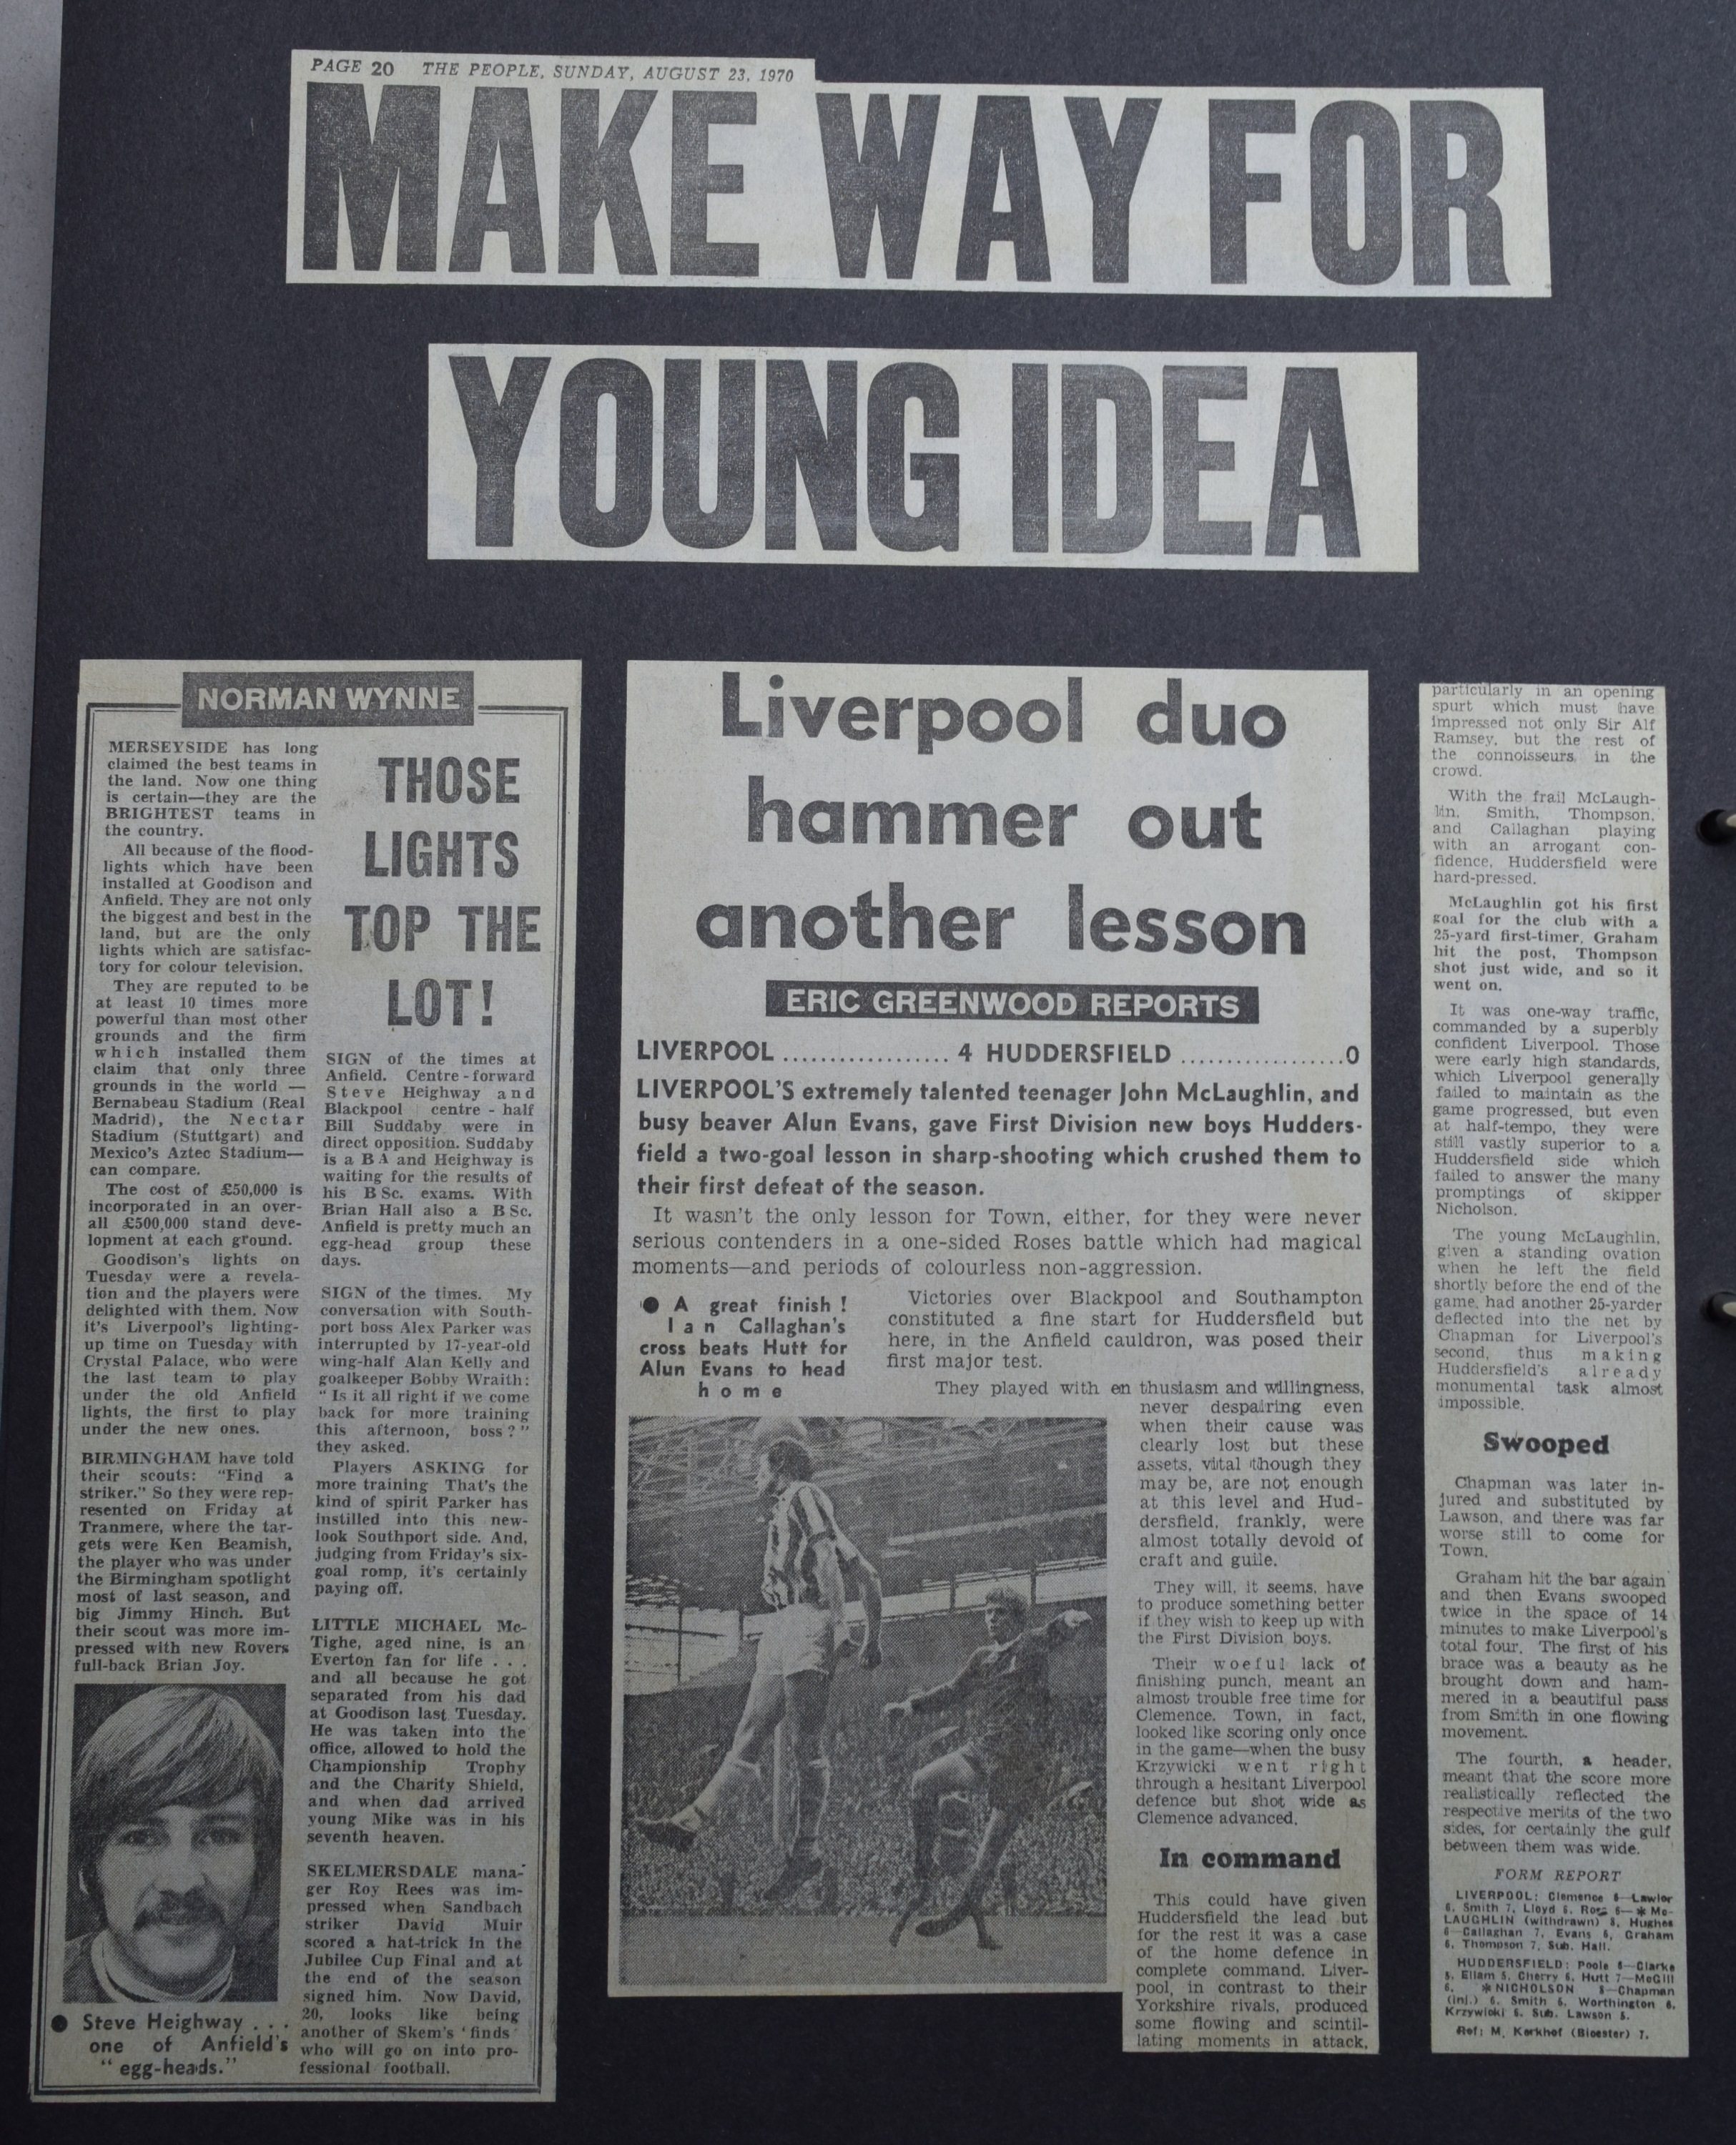 Make way for young idea! - 22 August 1970